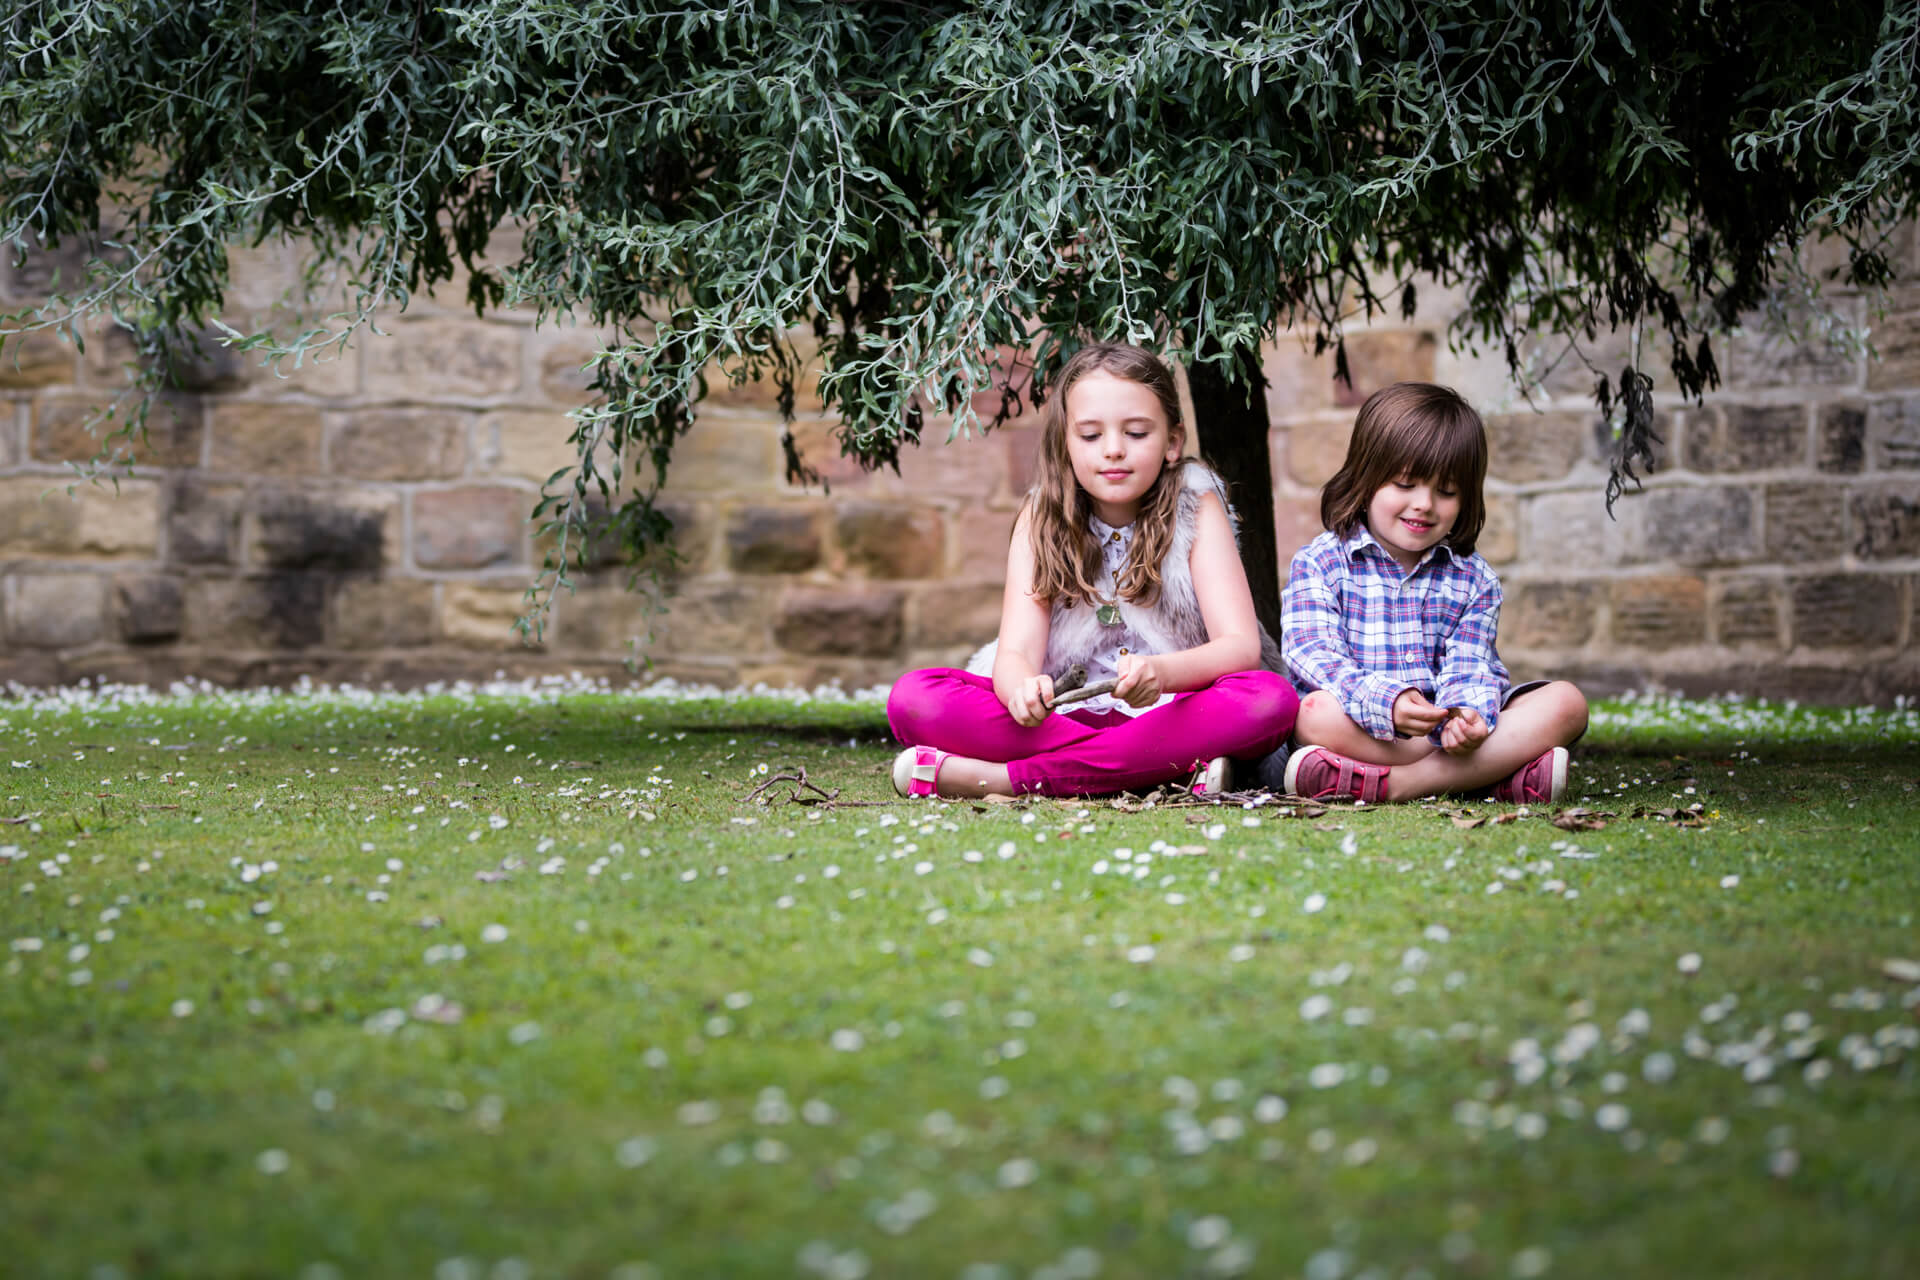 brother and sister sitting together under a tree